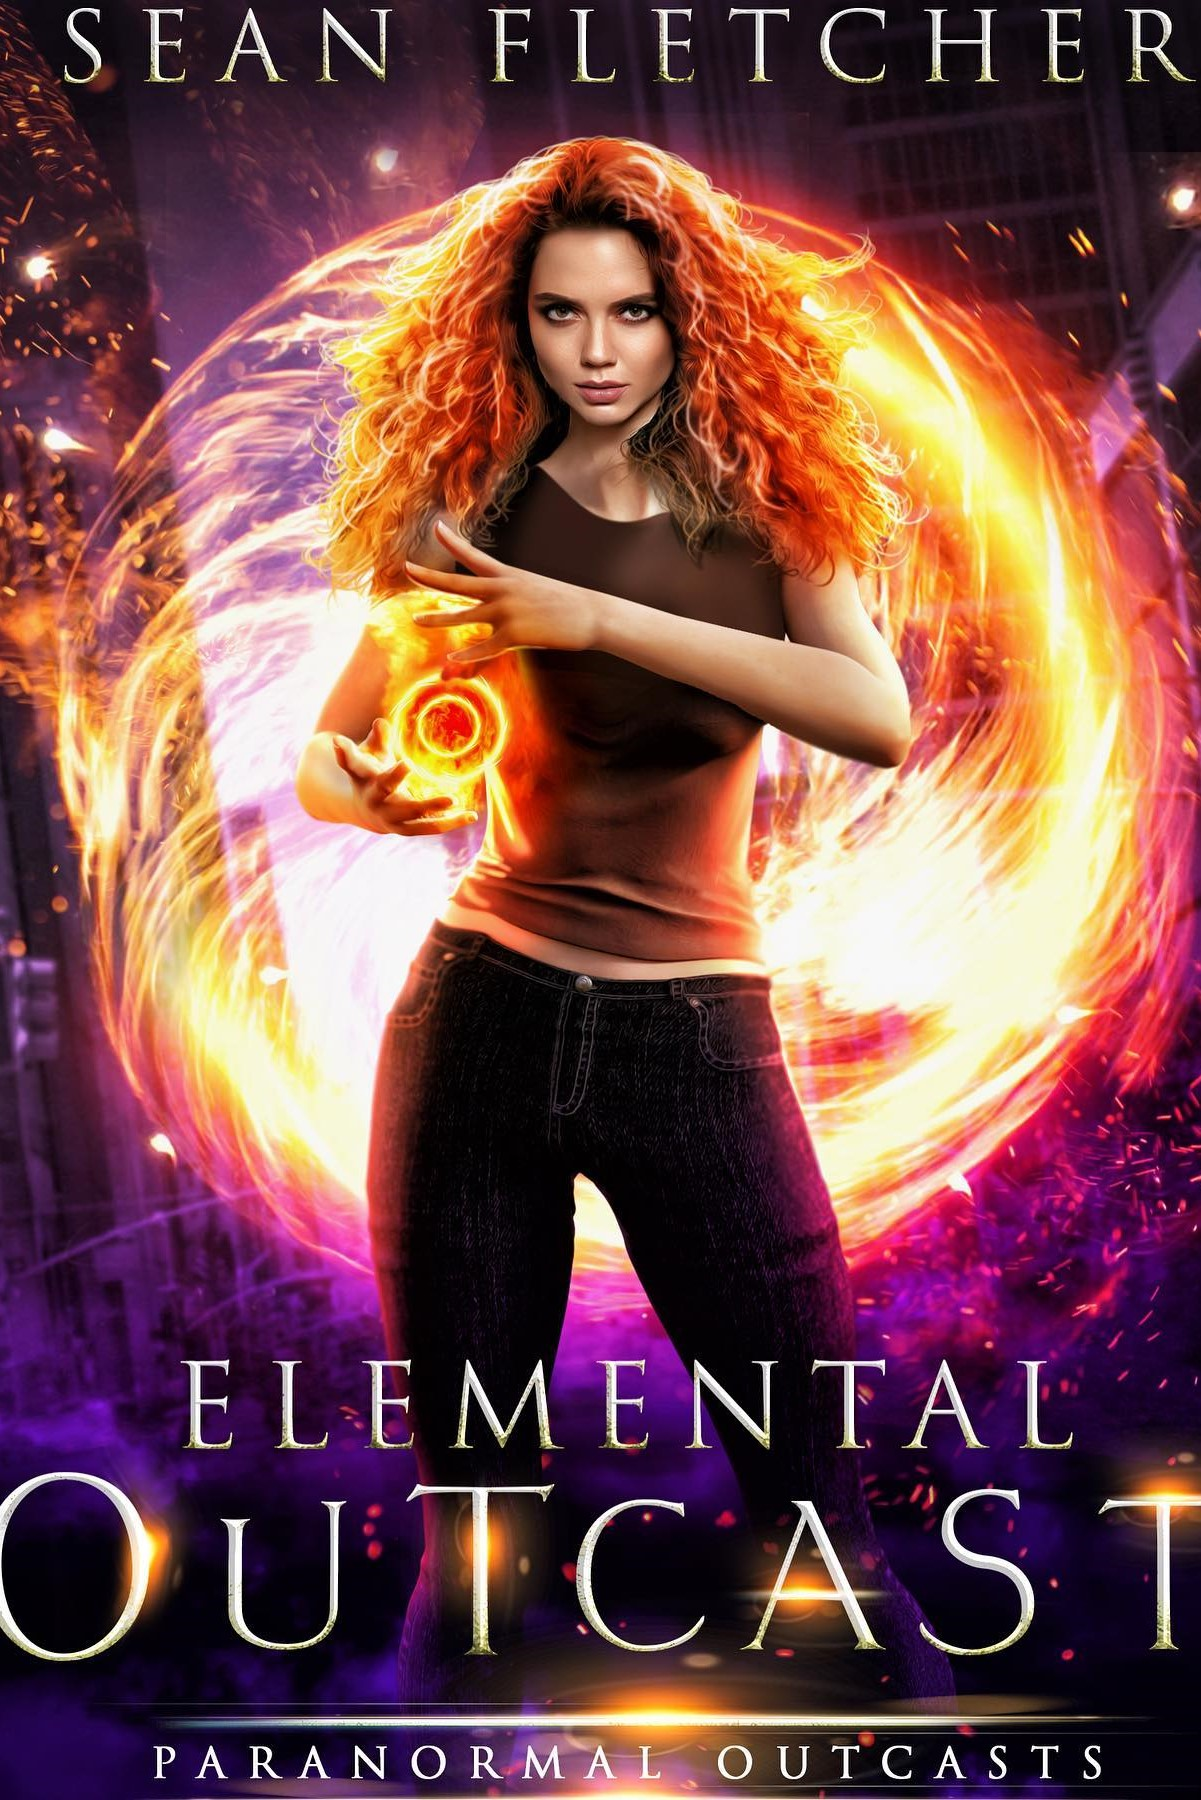 Elemental Outcast (Paranormal Outcasts Book 1) – Sean Fletcher